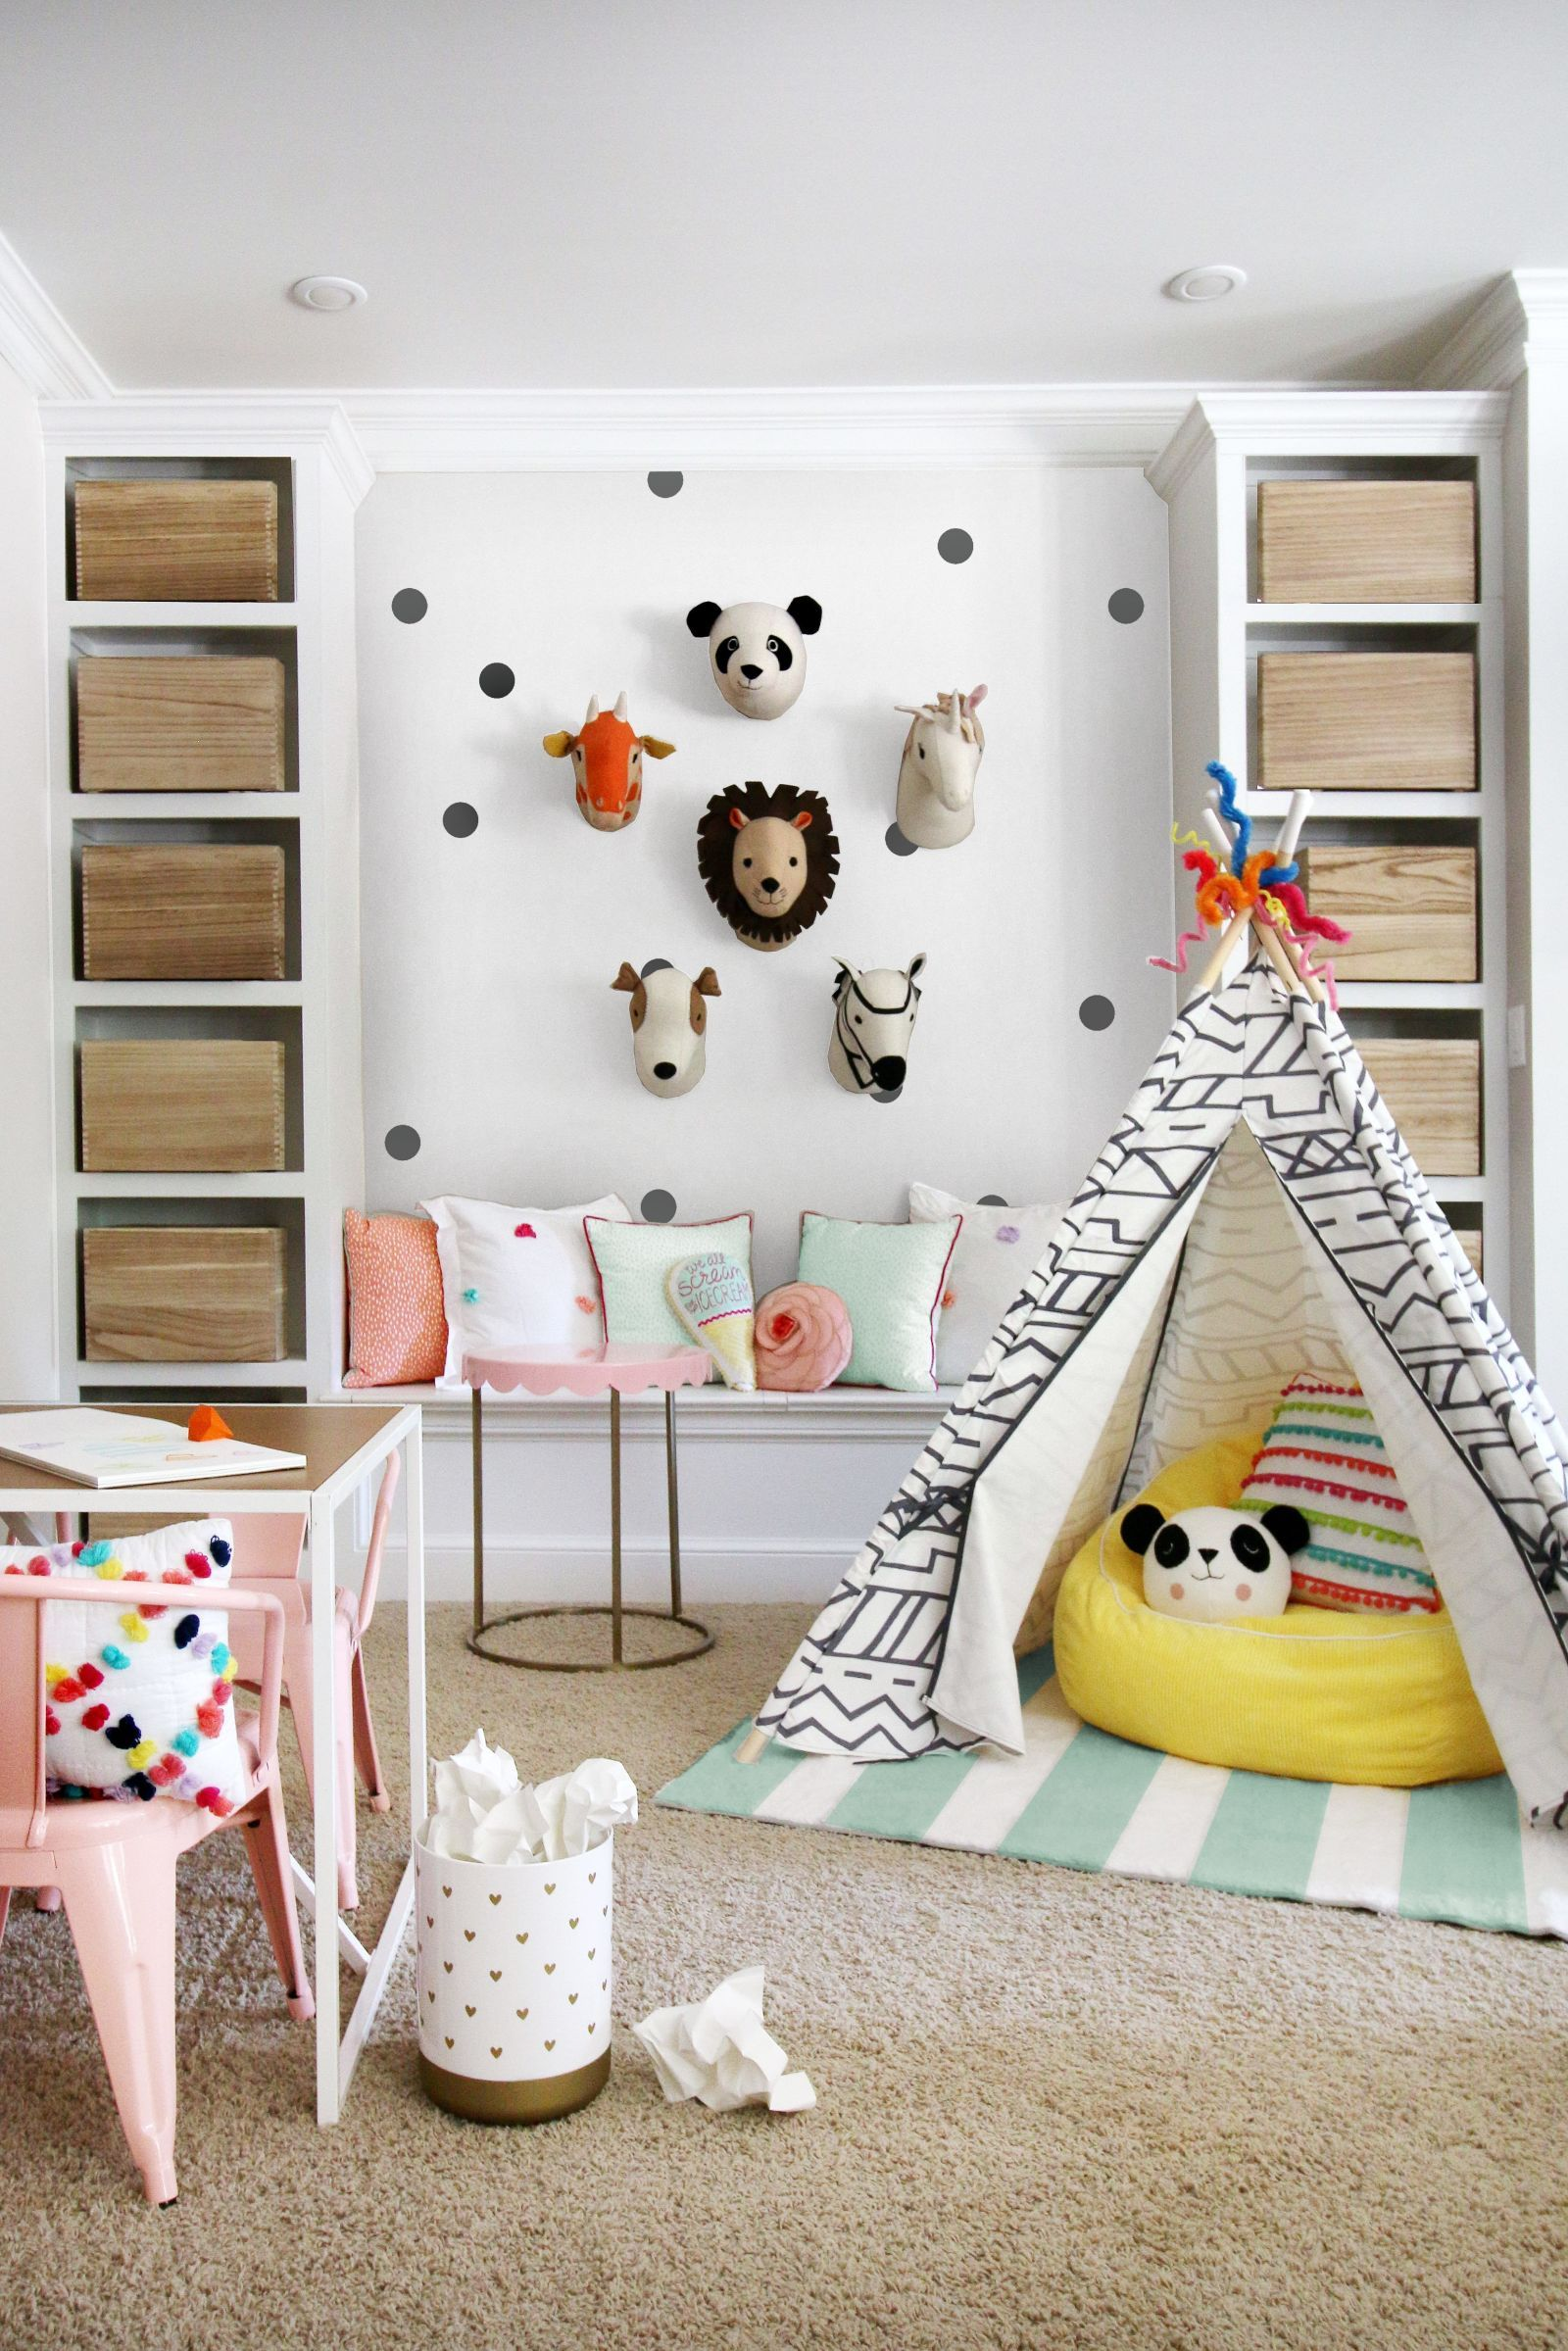 6 Totally Fresh Decorating Ideas For The Kids' Playroom